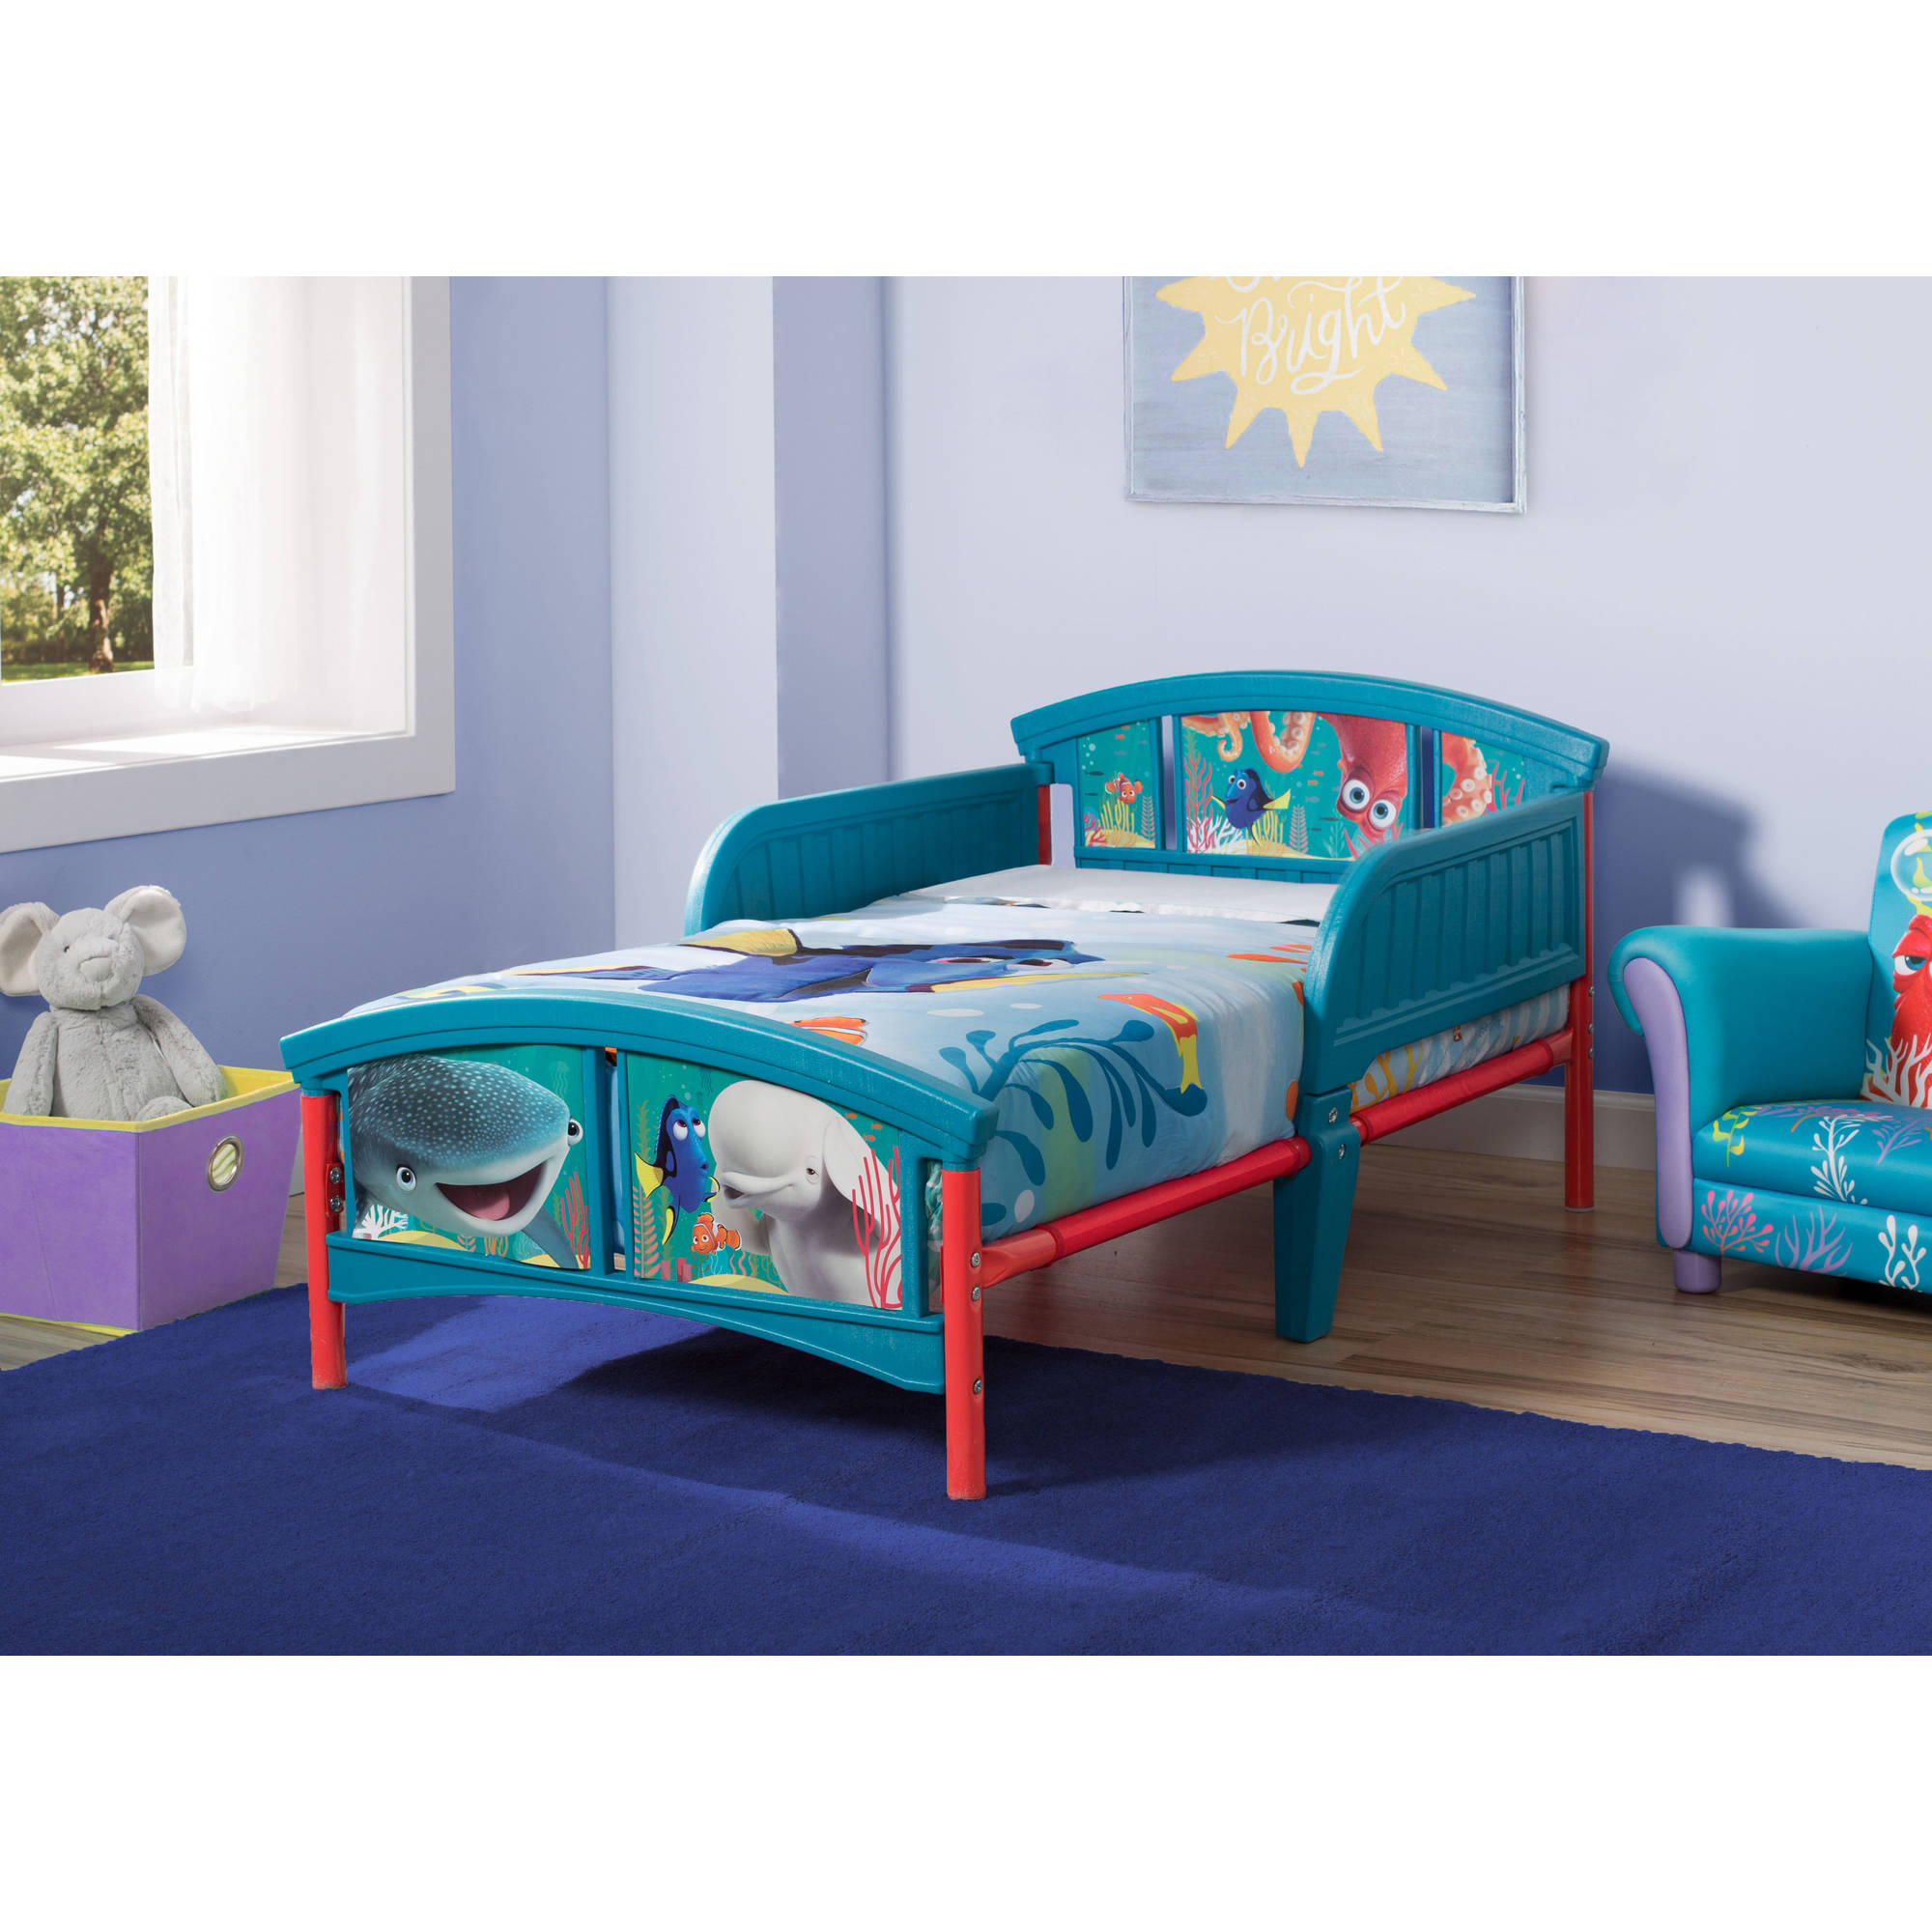 Disney Finding Dory Plastic Toddler Bed